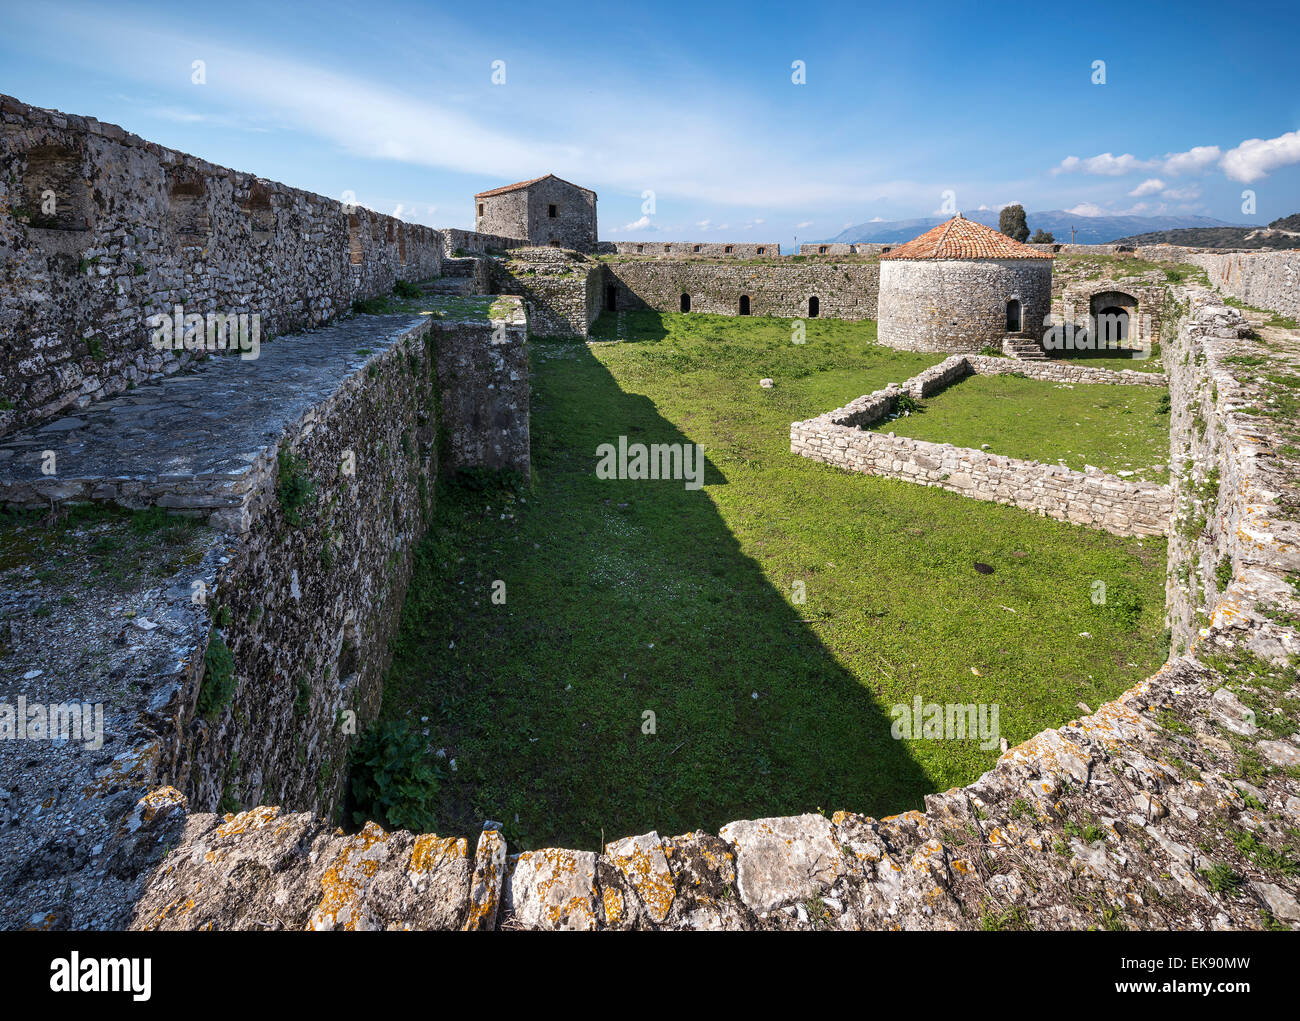 Interior of the triangular fortress at Butrint in Southern Albania. - Stock Image